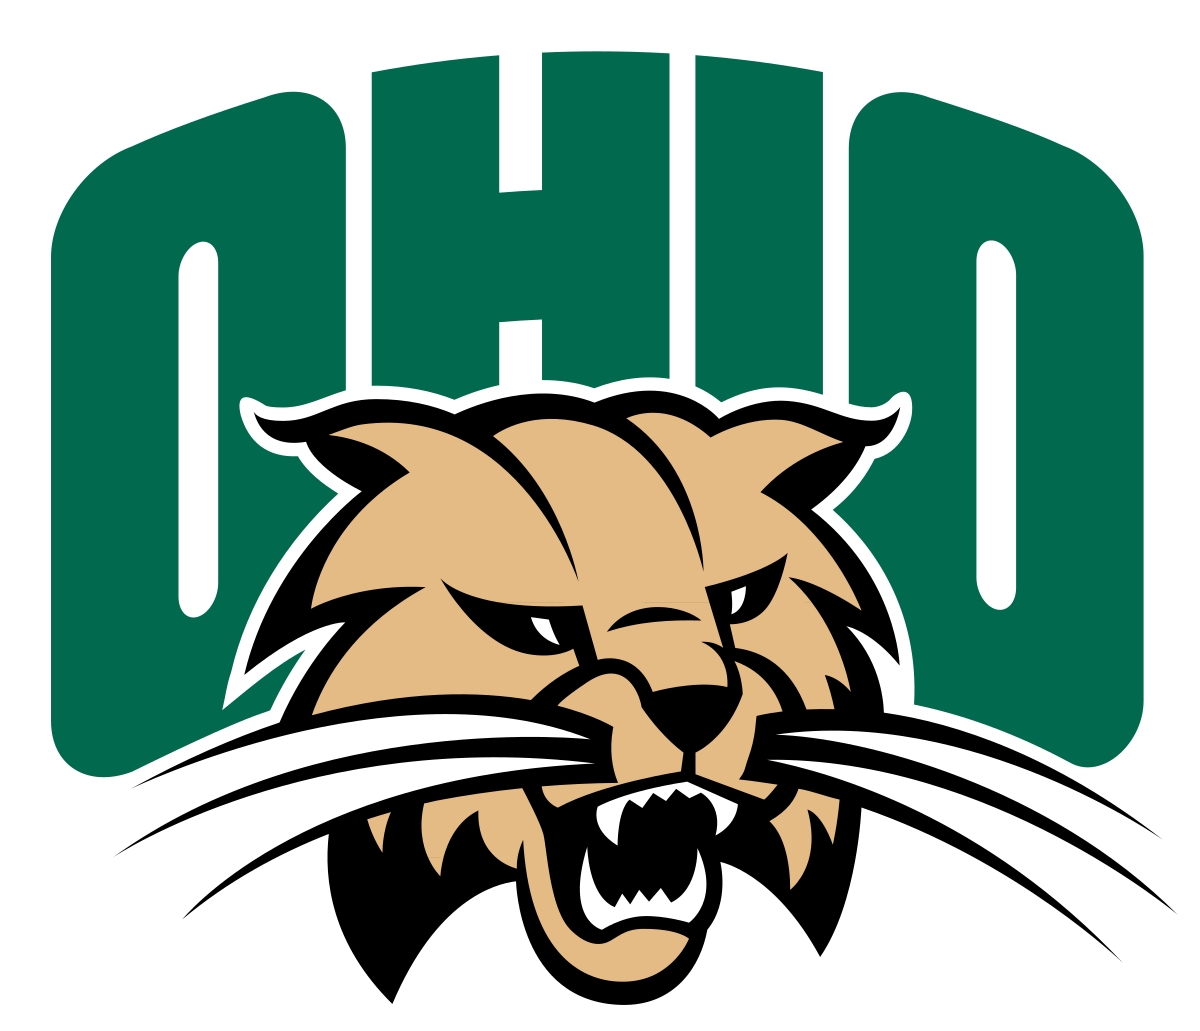 Ohio bobcats wikipedia . Athens drawing gladiator helmet png royalty free download